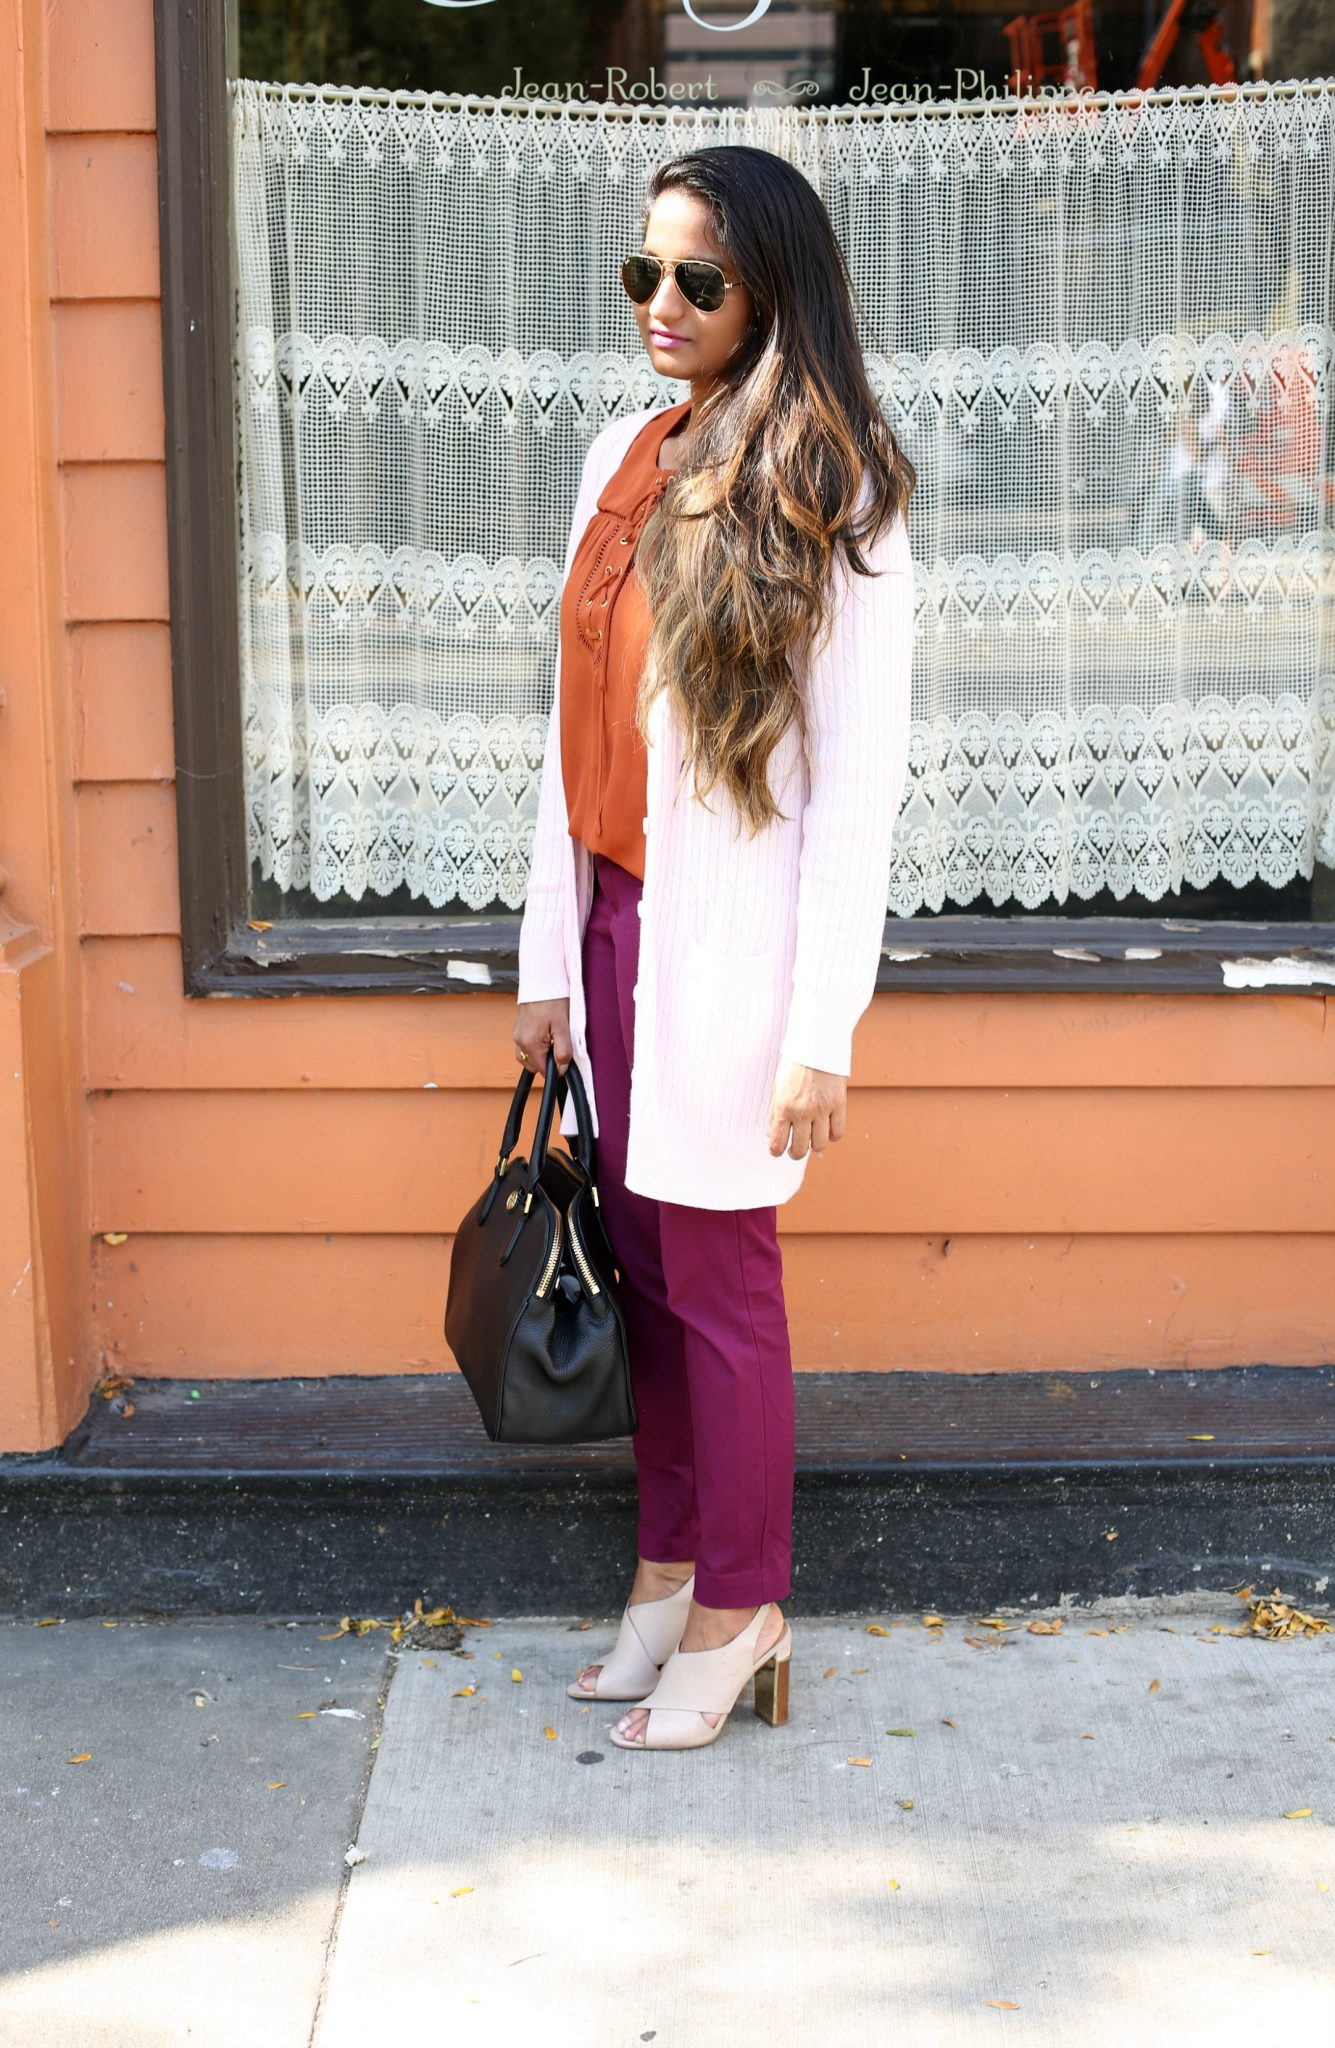 Lifestyle Blogger Surekha in Dreaming Loud Sharing Fall Work wear outfit in Purple, Rust and Blush| Fall Colors Fashion - Rust, Purple and Blush Outfit featured by popular Ohio modest fashion blogger, Dreaming Loud